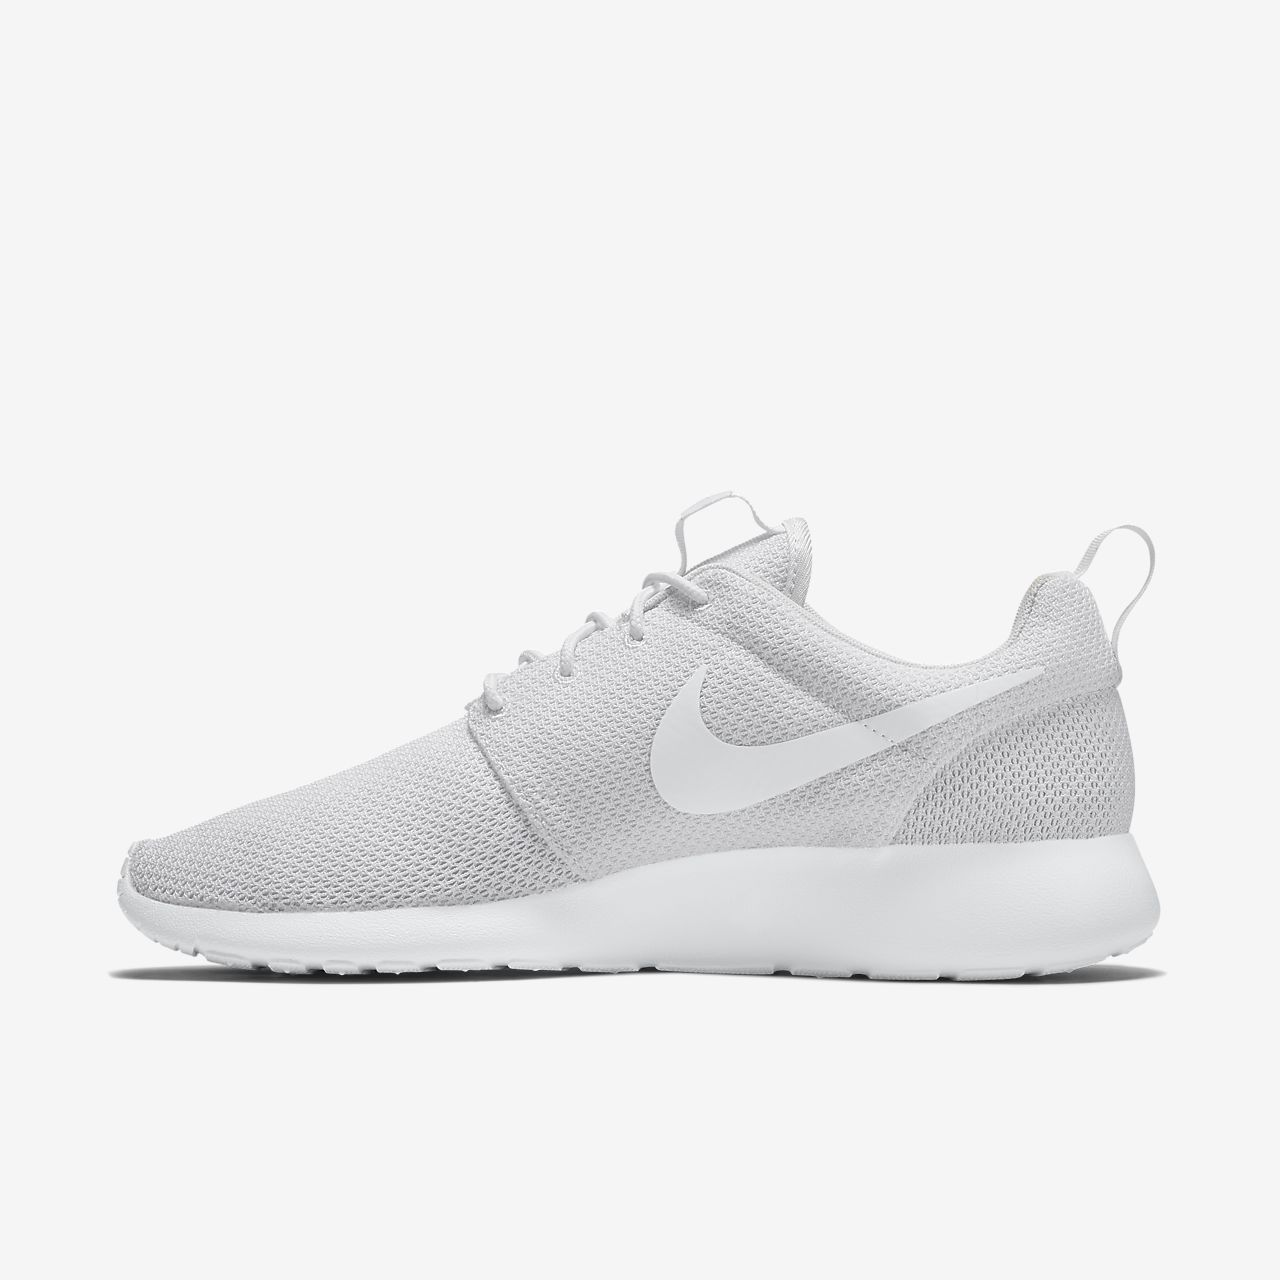 separation shoes aee5b b769c ... Nike Roshe One Men s Shoe